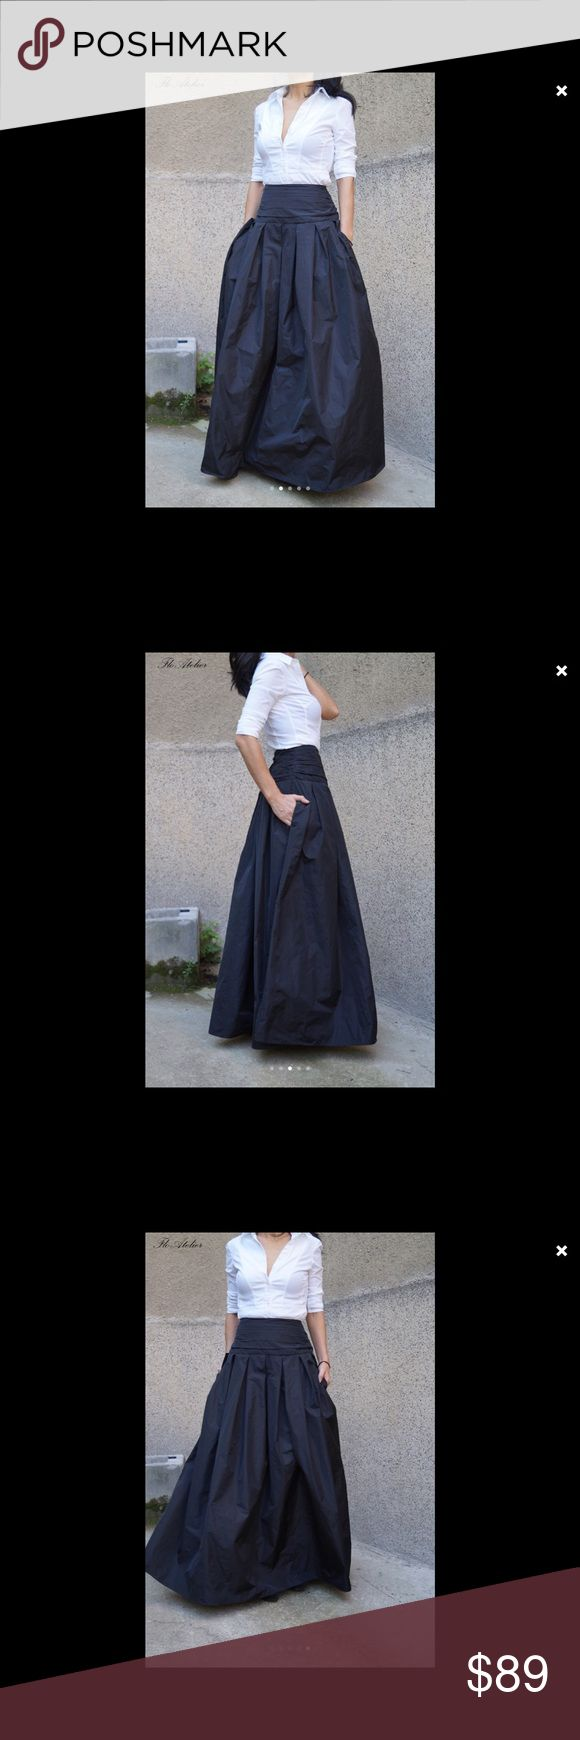 LOVELY BLACK LONG MAXI SKIRT, LONG WAISTBAND Made to order all sizes, long and flowing high quality taffeta skirt, beautiful classical look, comfortable and adds a touch of elegance. Could match with fitted or oversized ones, made to measure so the length will be where you want it. Dry clean only.  Estimated time to create and deliver is 7-21 days.  Ask me for sizing chart if you are interested.🌹 FLOA Dresses Maxi